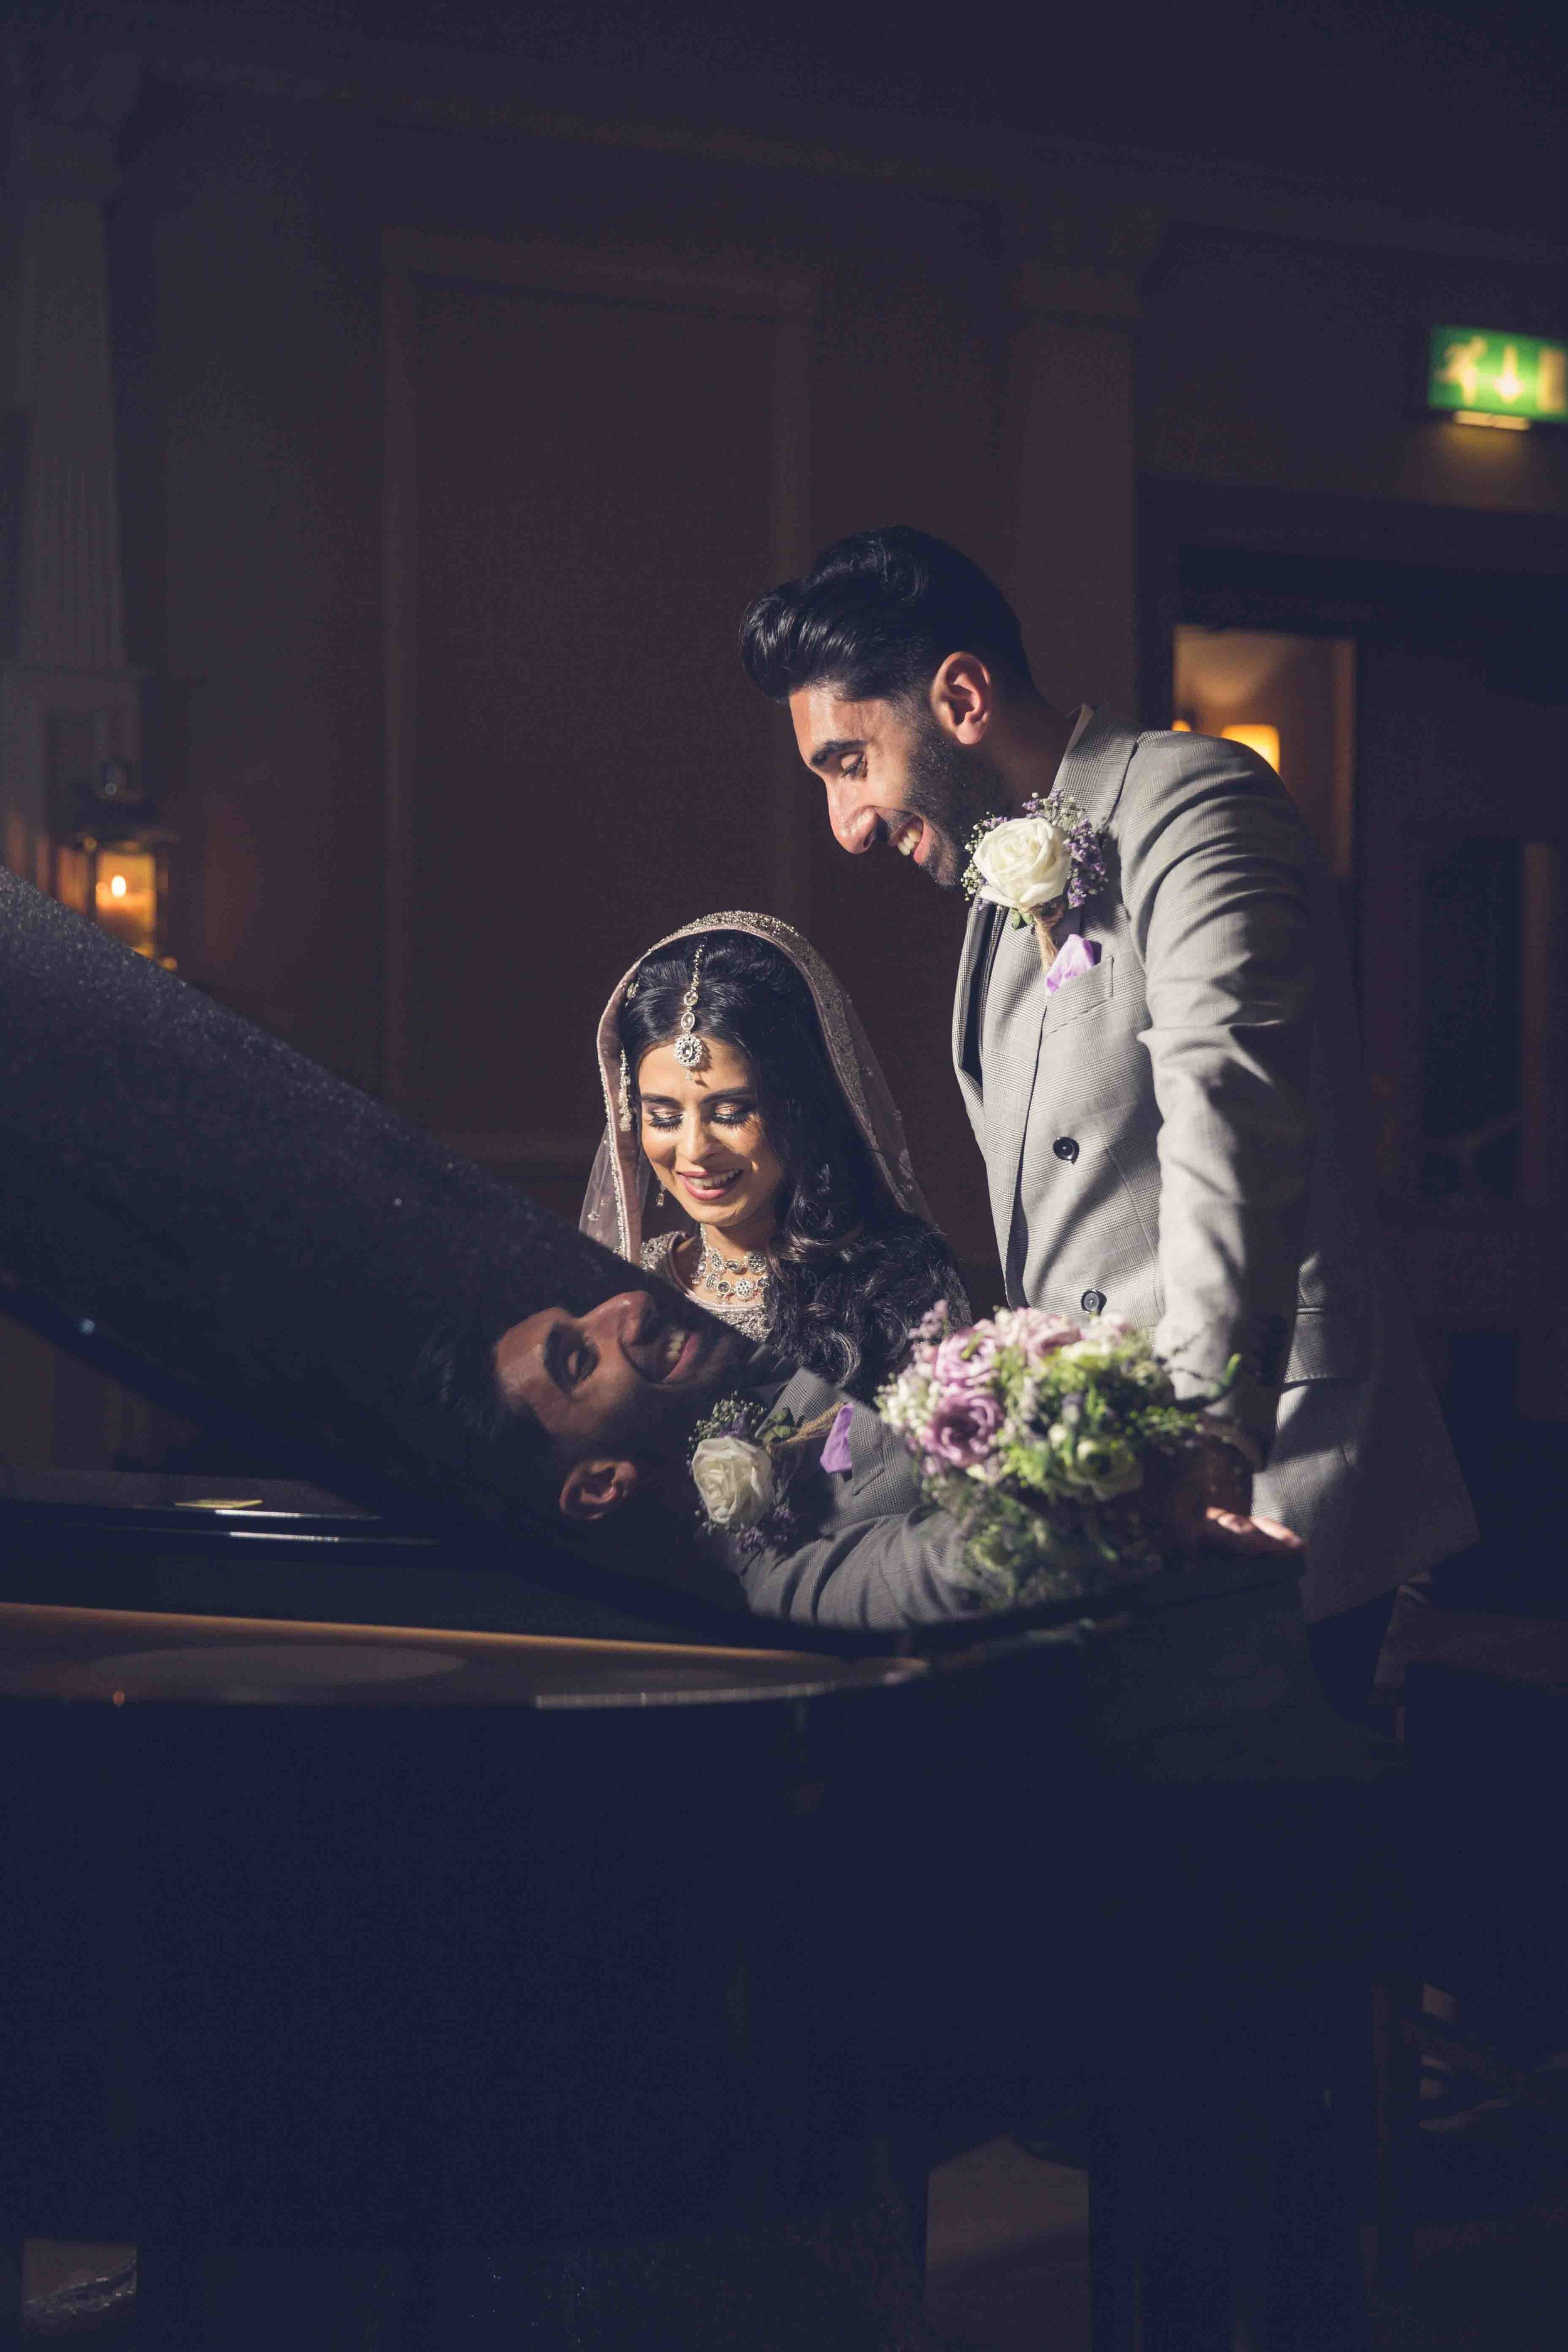 Opu Sultan Photography Asian wedding photography scotland edinburgh glasgow manchester birmingham london-305.jpg